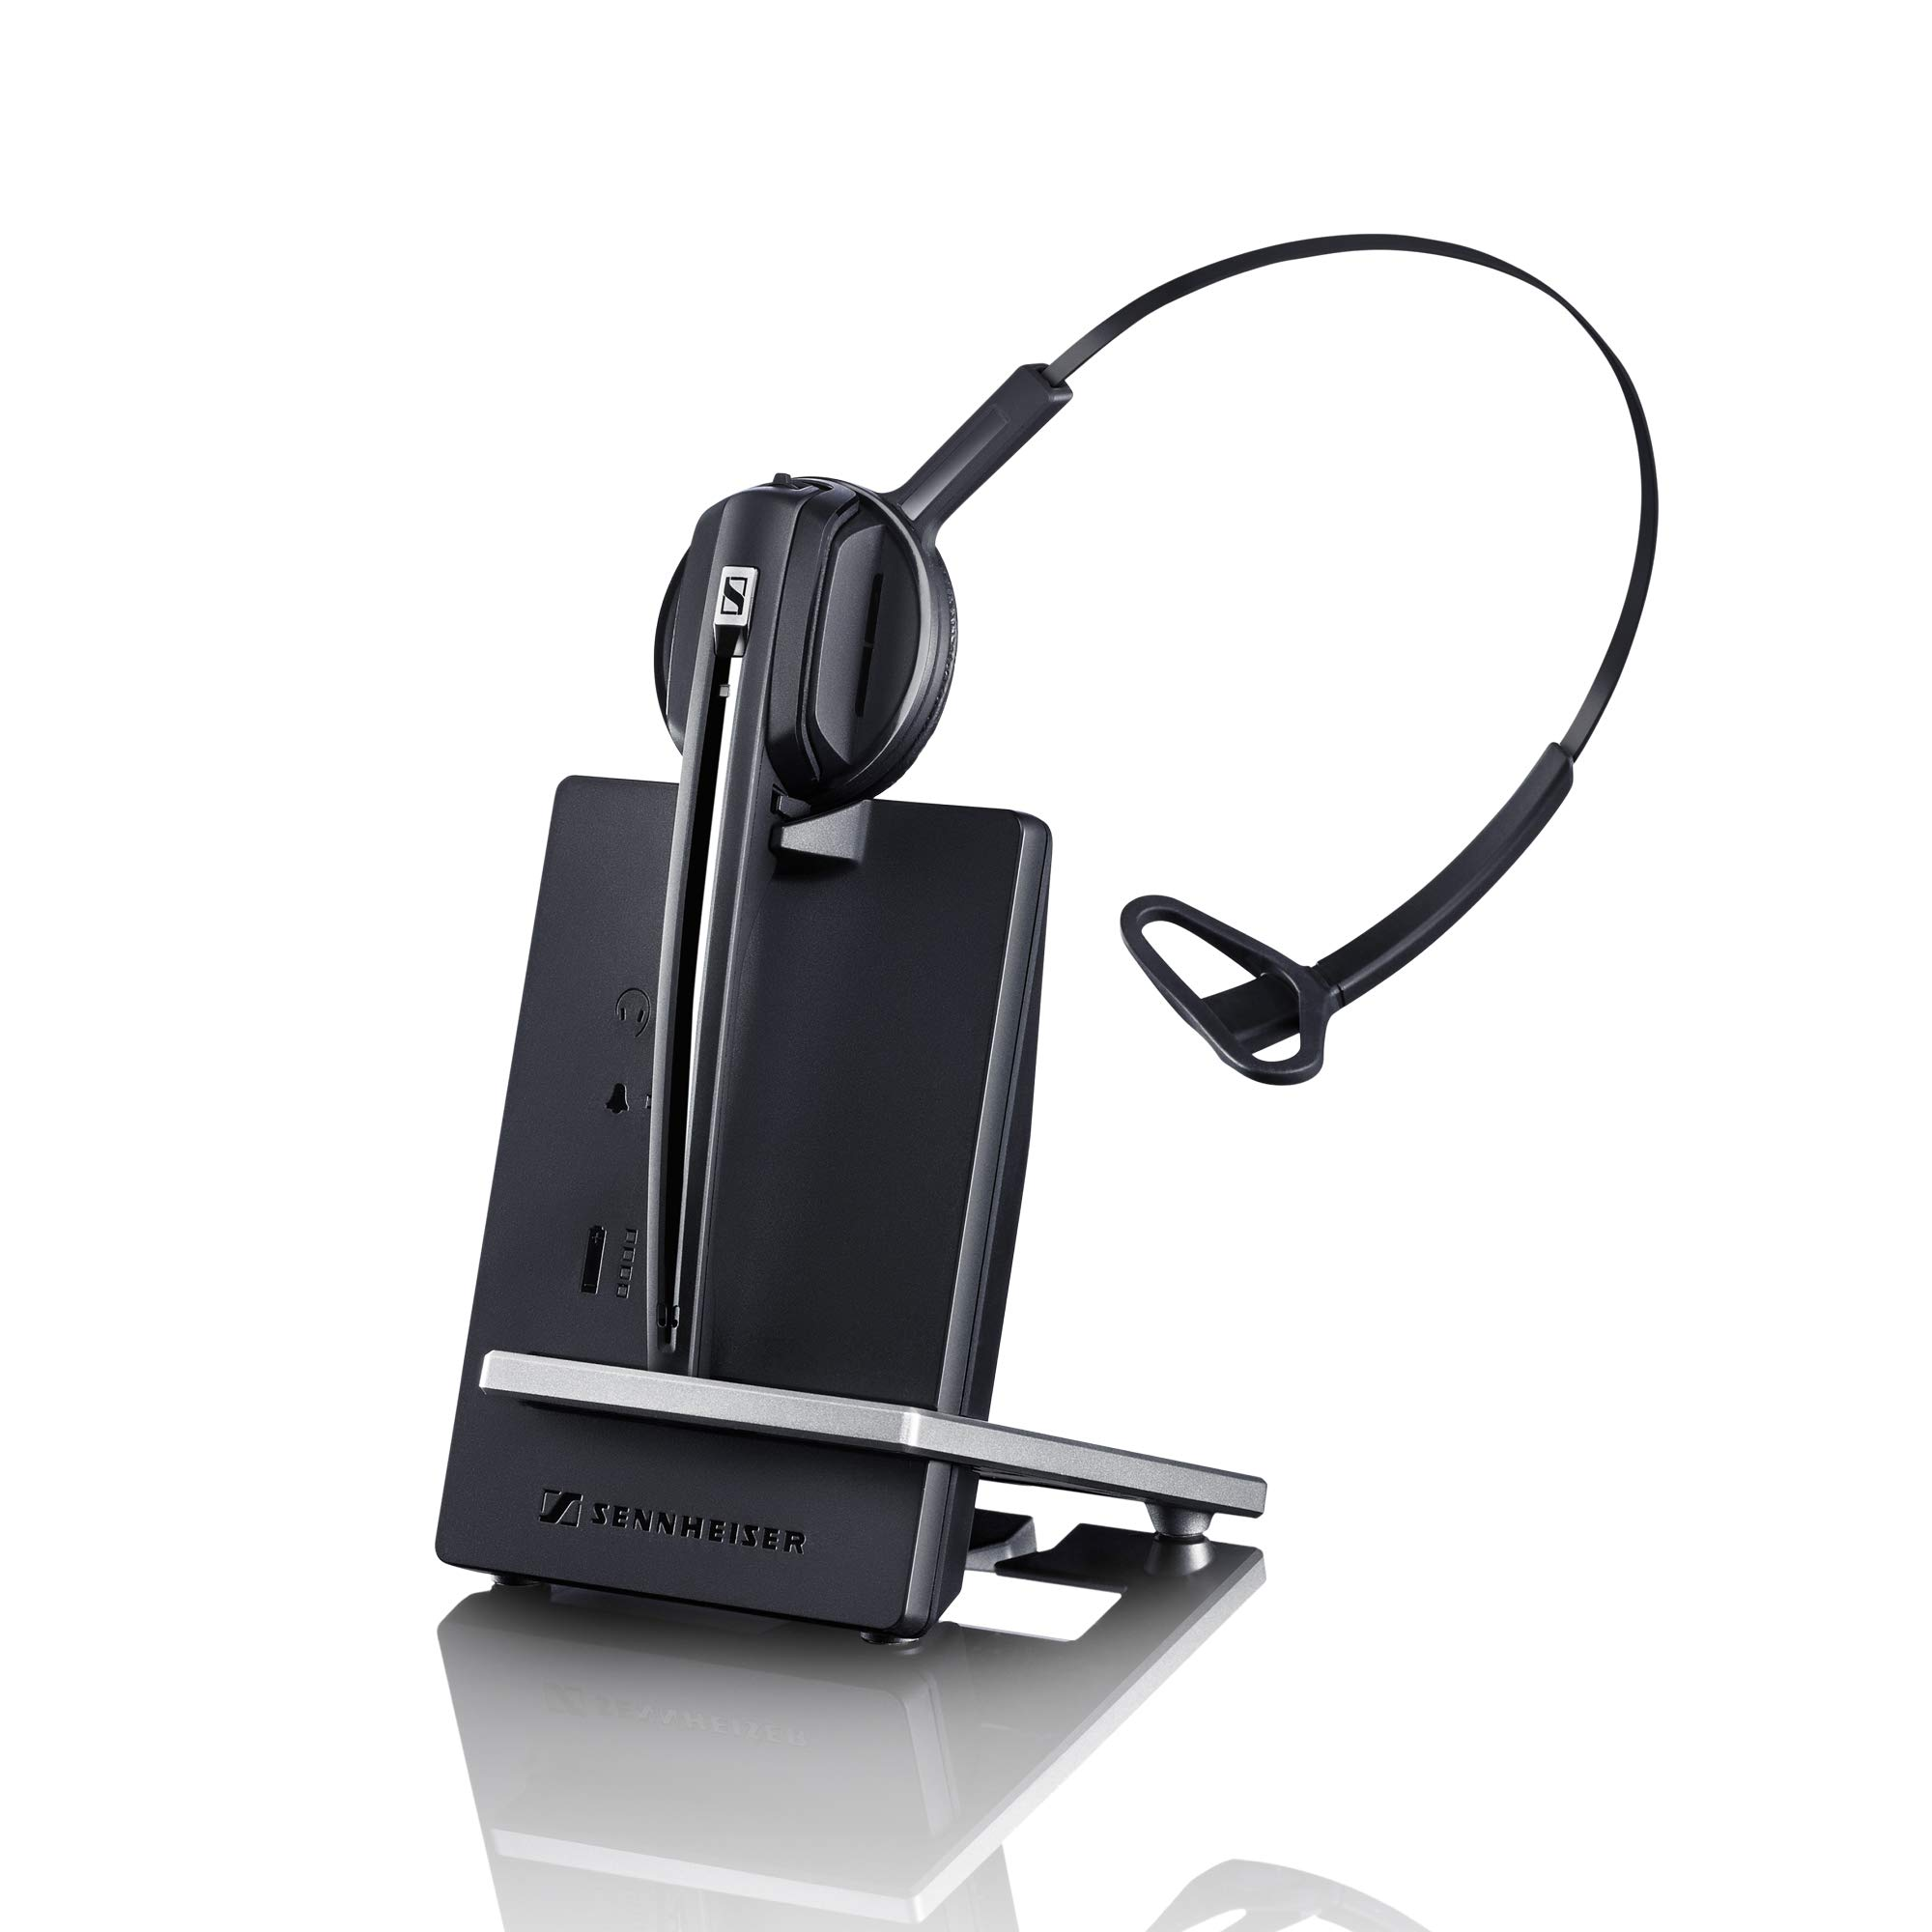 Sennheiser D 10 Phone (506410) Single-Sided Wireless DECT Headset for Direct Desk Phone Connection, with Noise Cancelling Microphone (Black) by Sennheiser Enterprise Solution